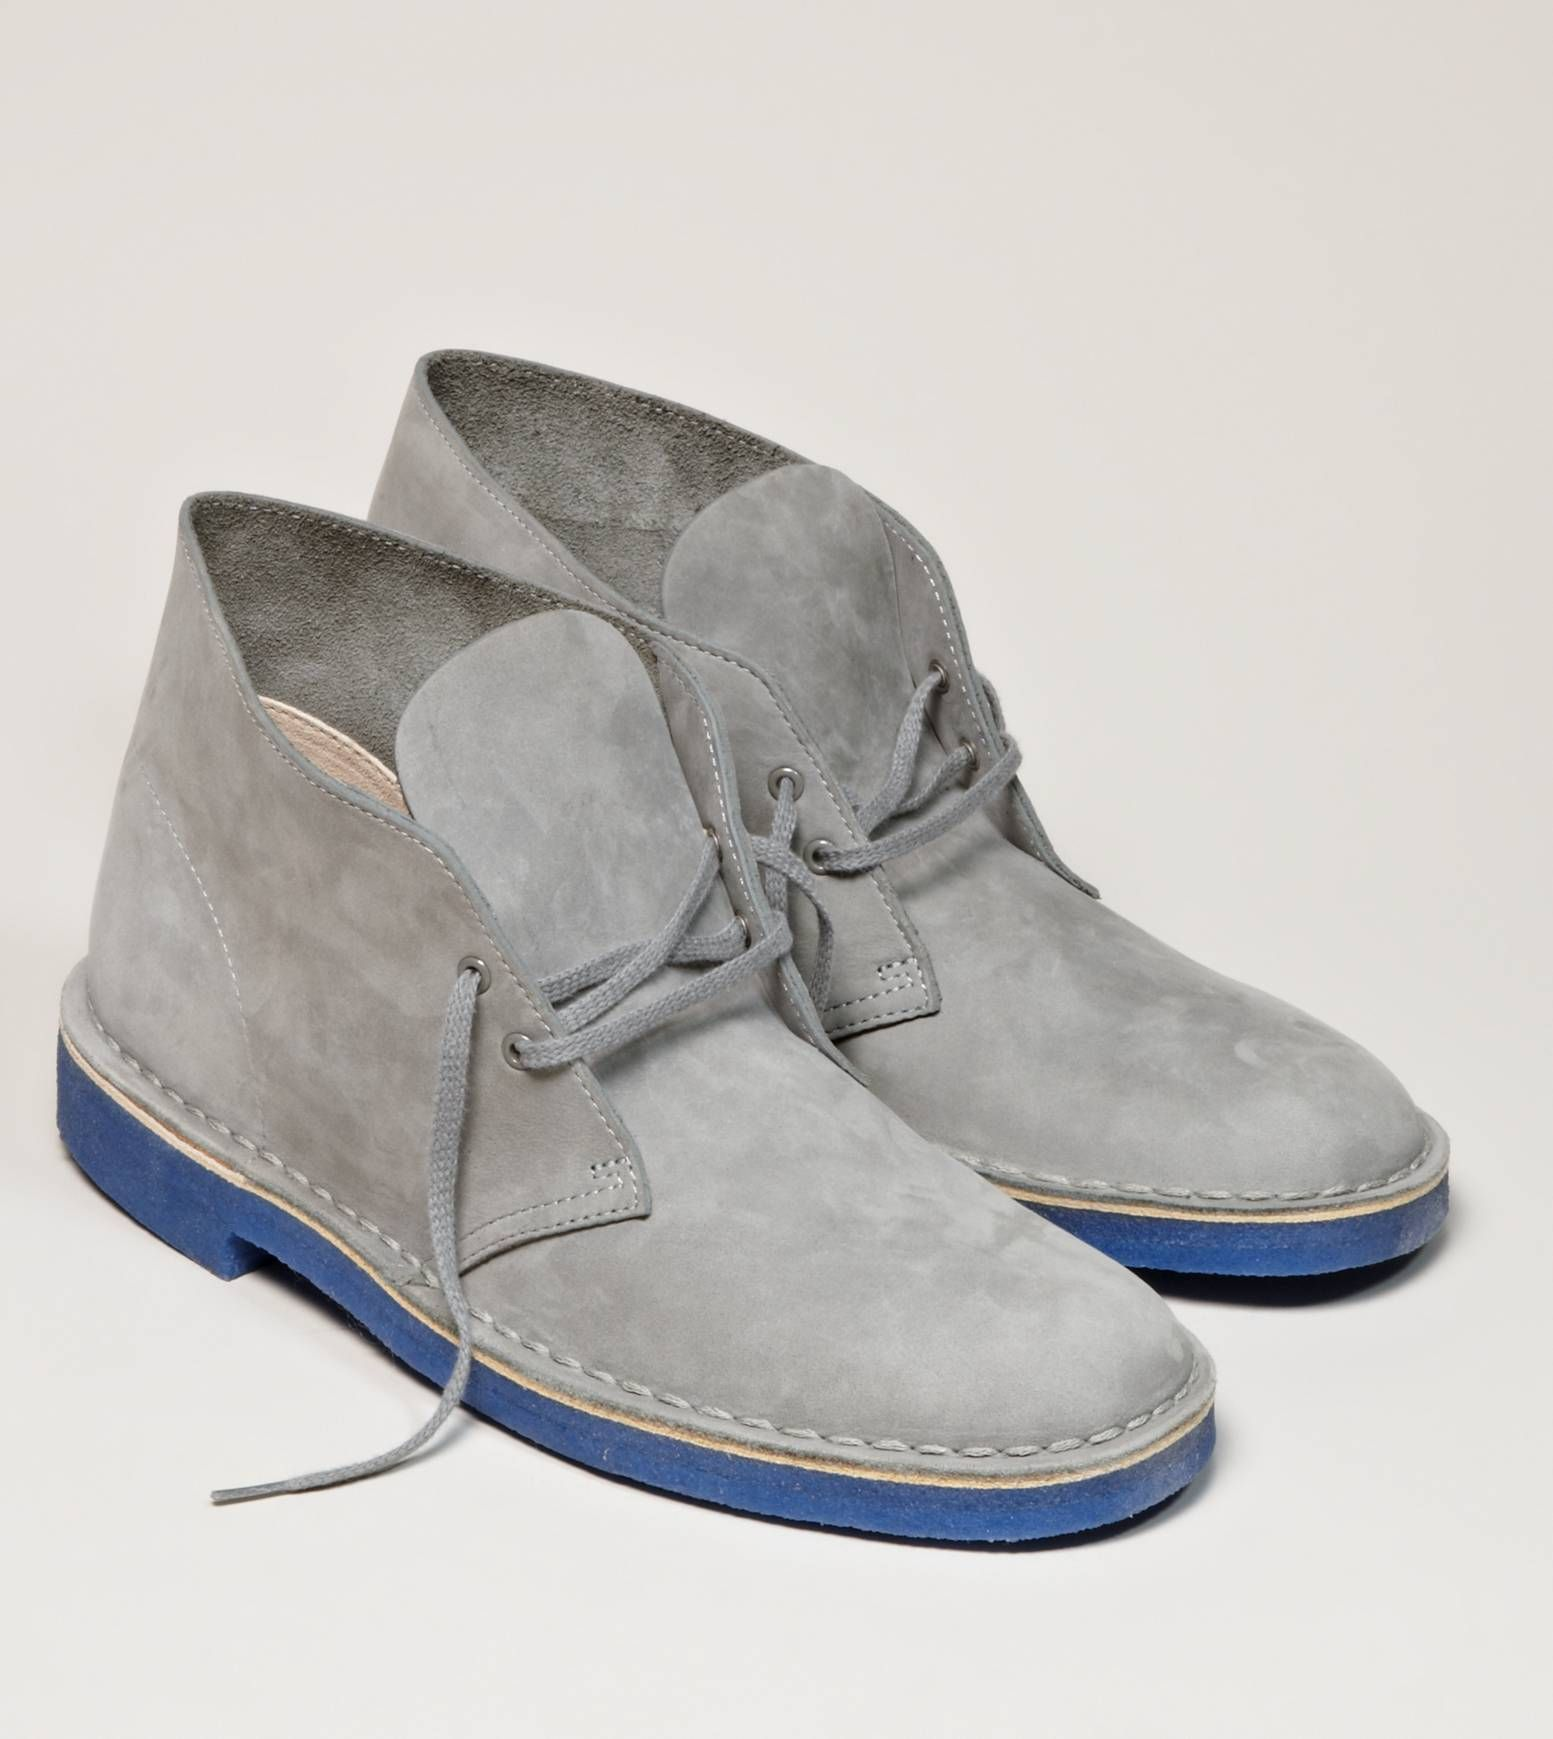 921a1cc92fe Contrast Sole, Clark's $120 | For Him | Shoes, Shoes with jeans ...